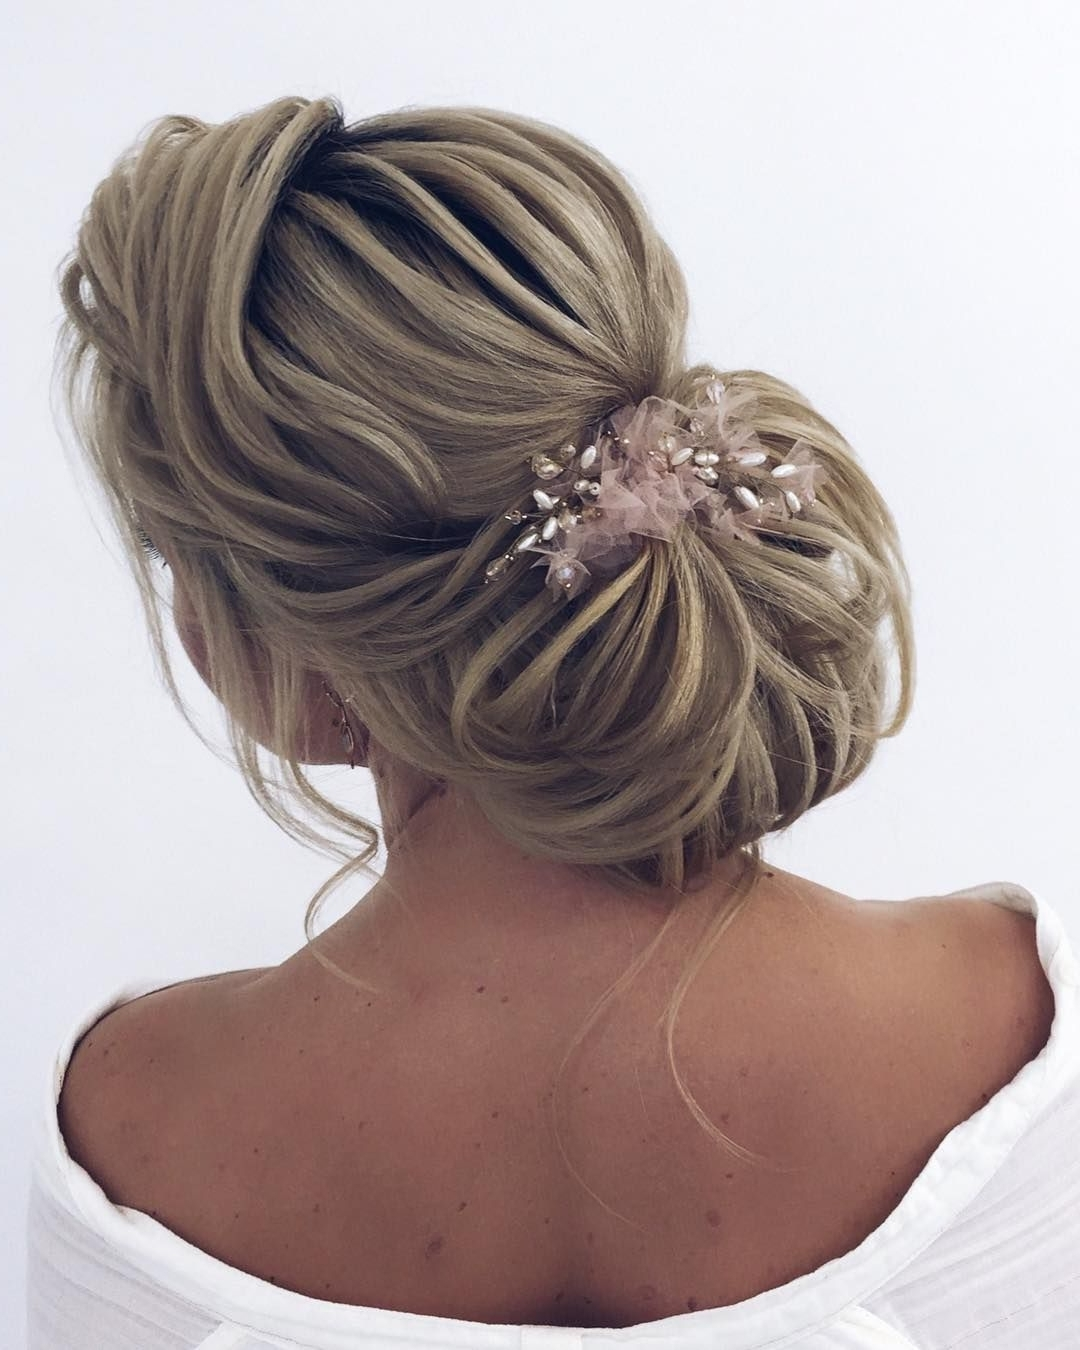 87 Fabulous Wedding Hairstyles For Every Wedding Dress Neckline Within Fashionable Fabulous Bridal Pony Hairstyles (Gallery 11 of 20)